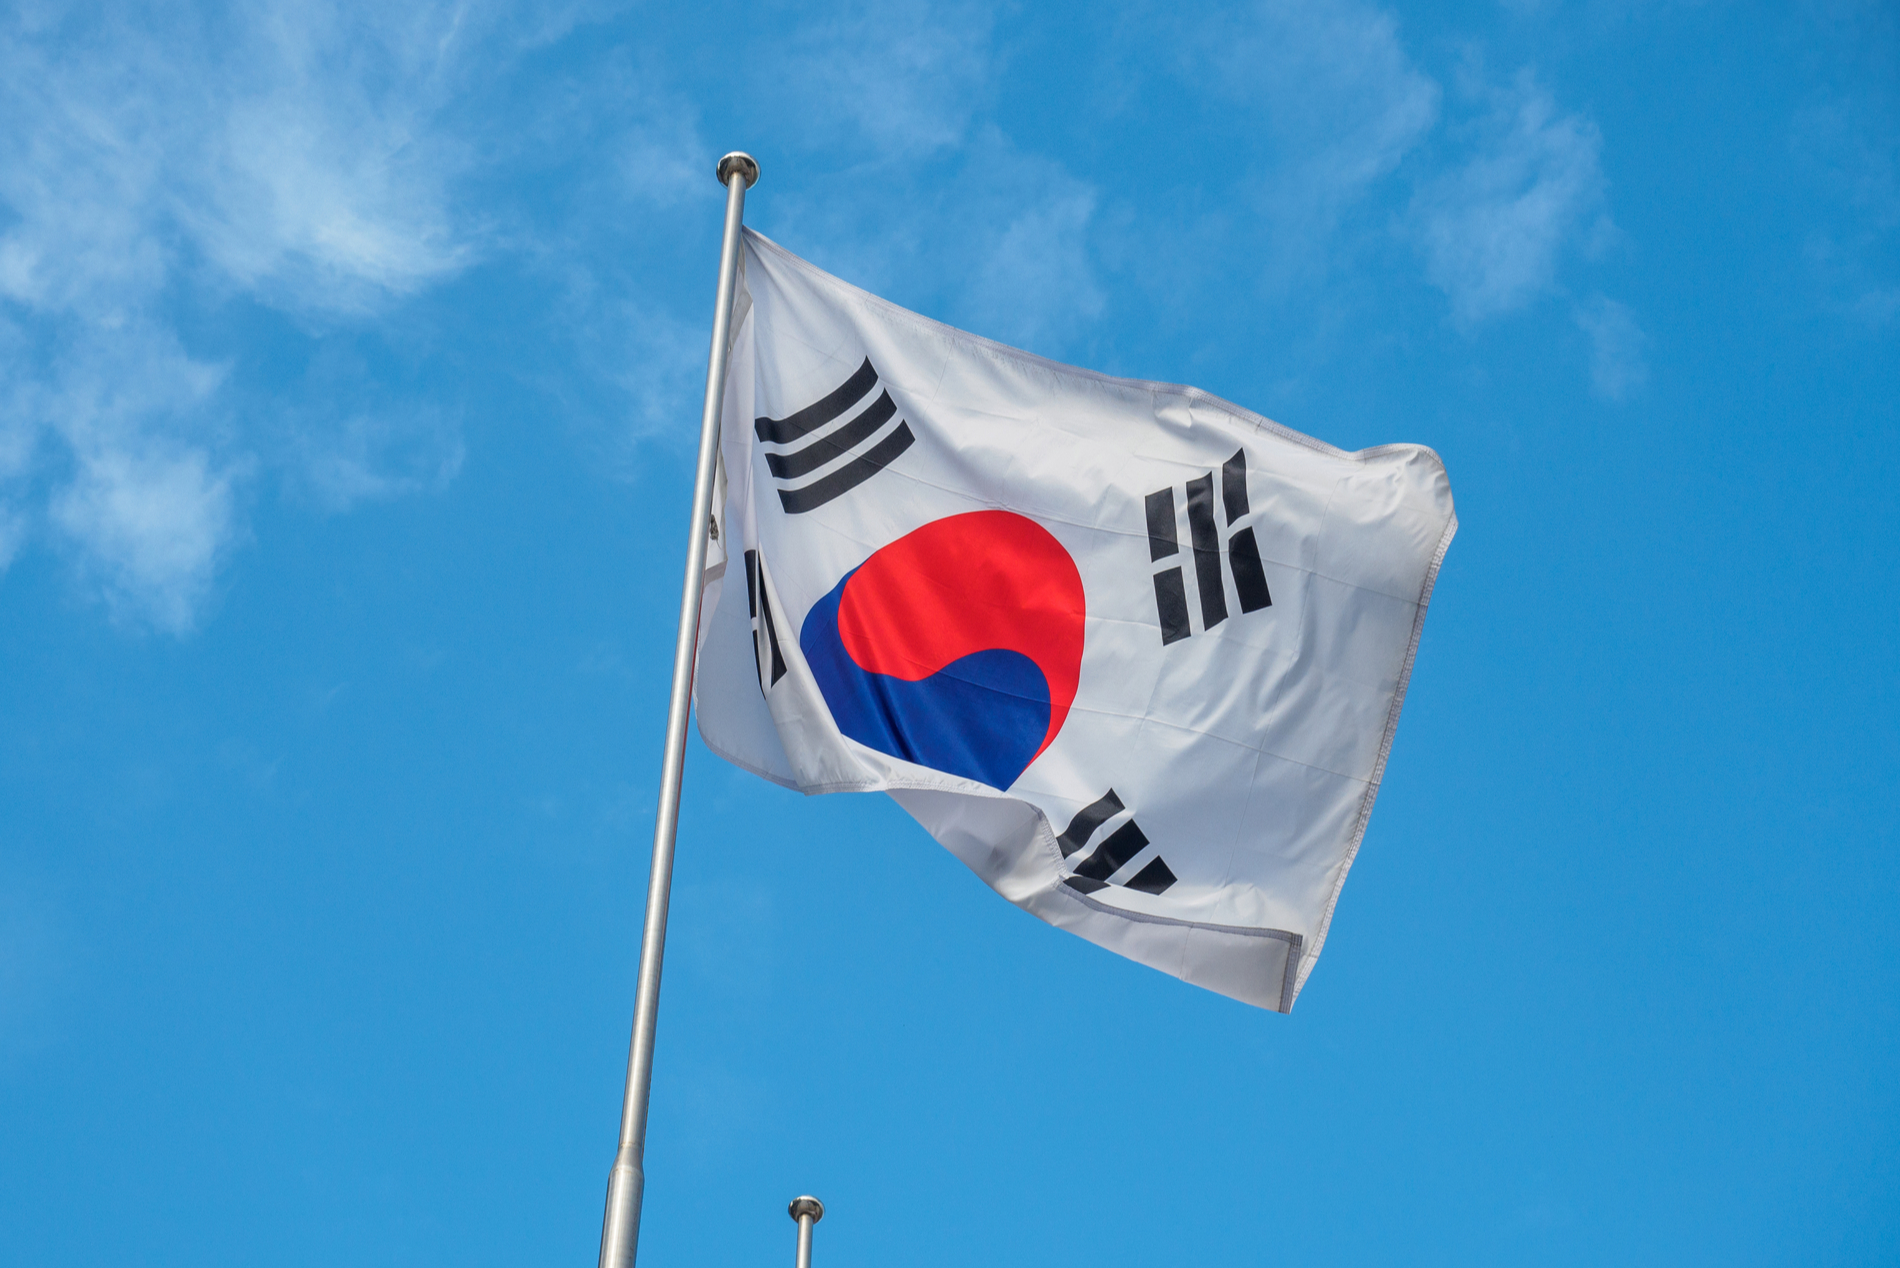 south korea cryptocurrency exchange shuts down